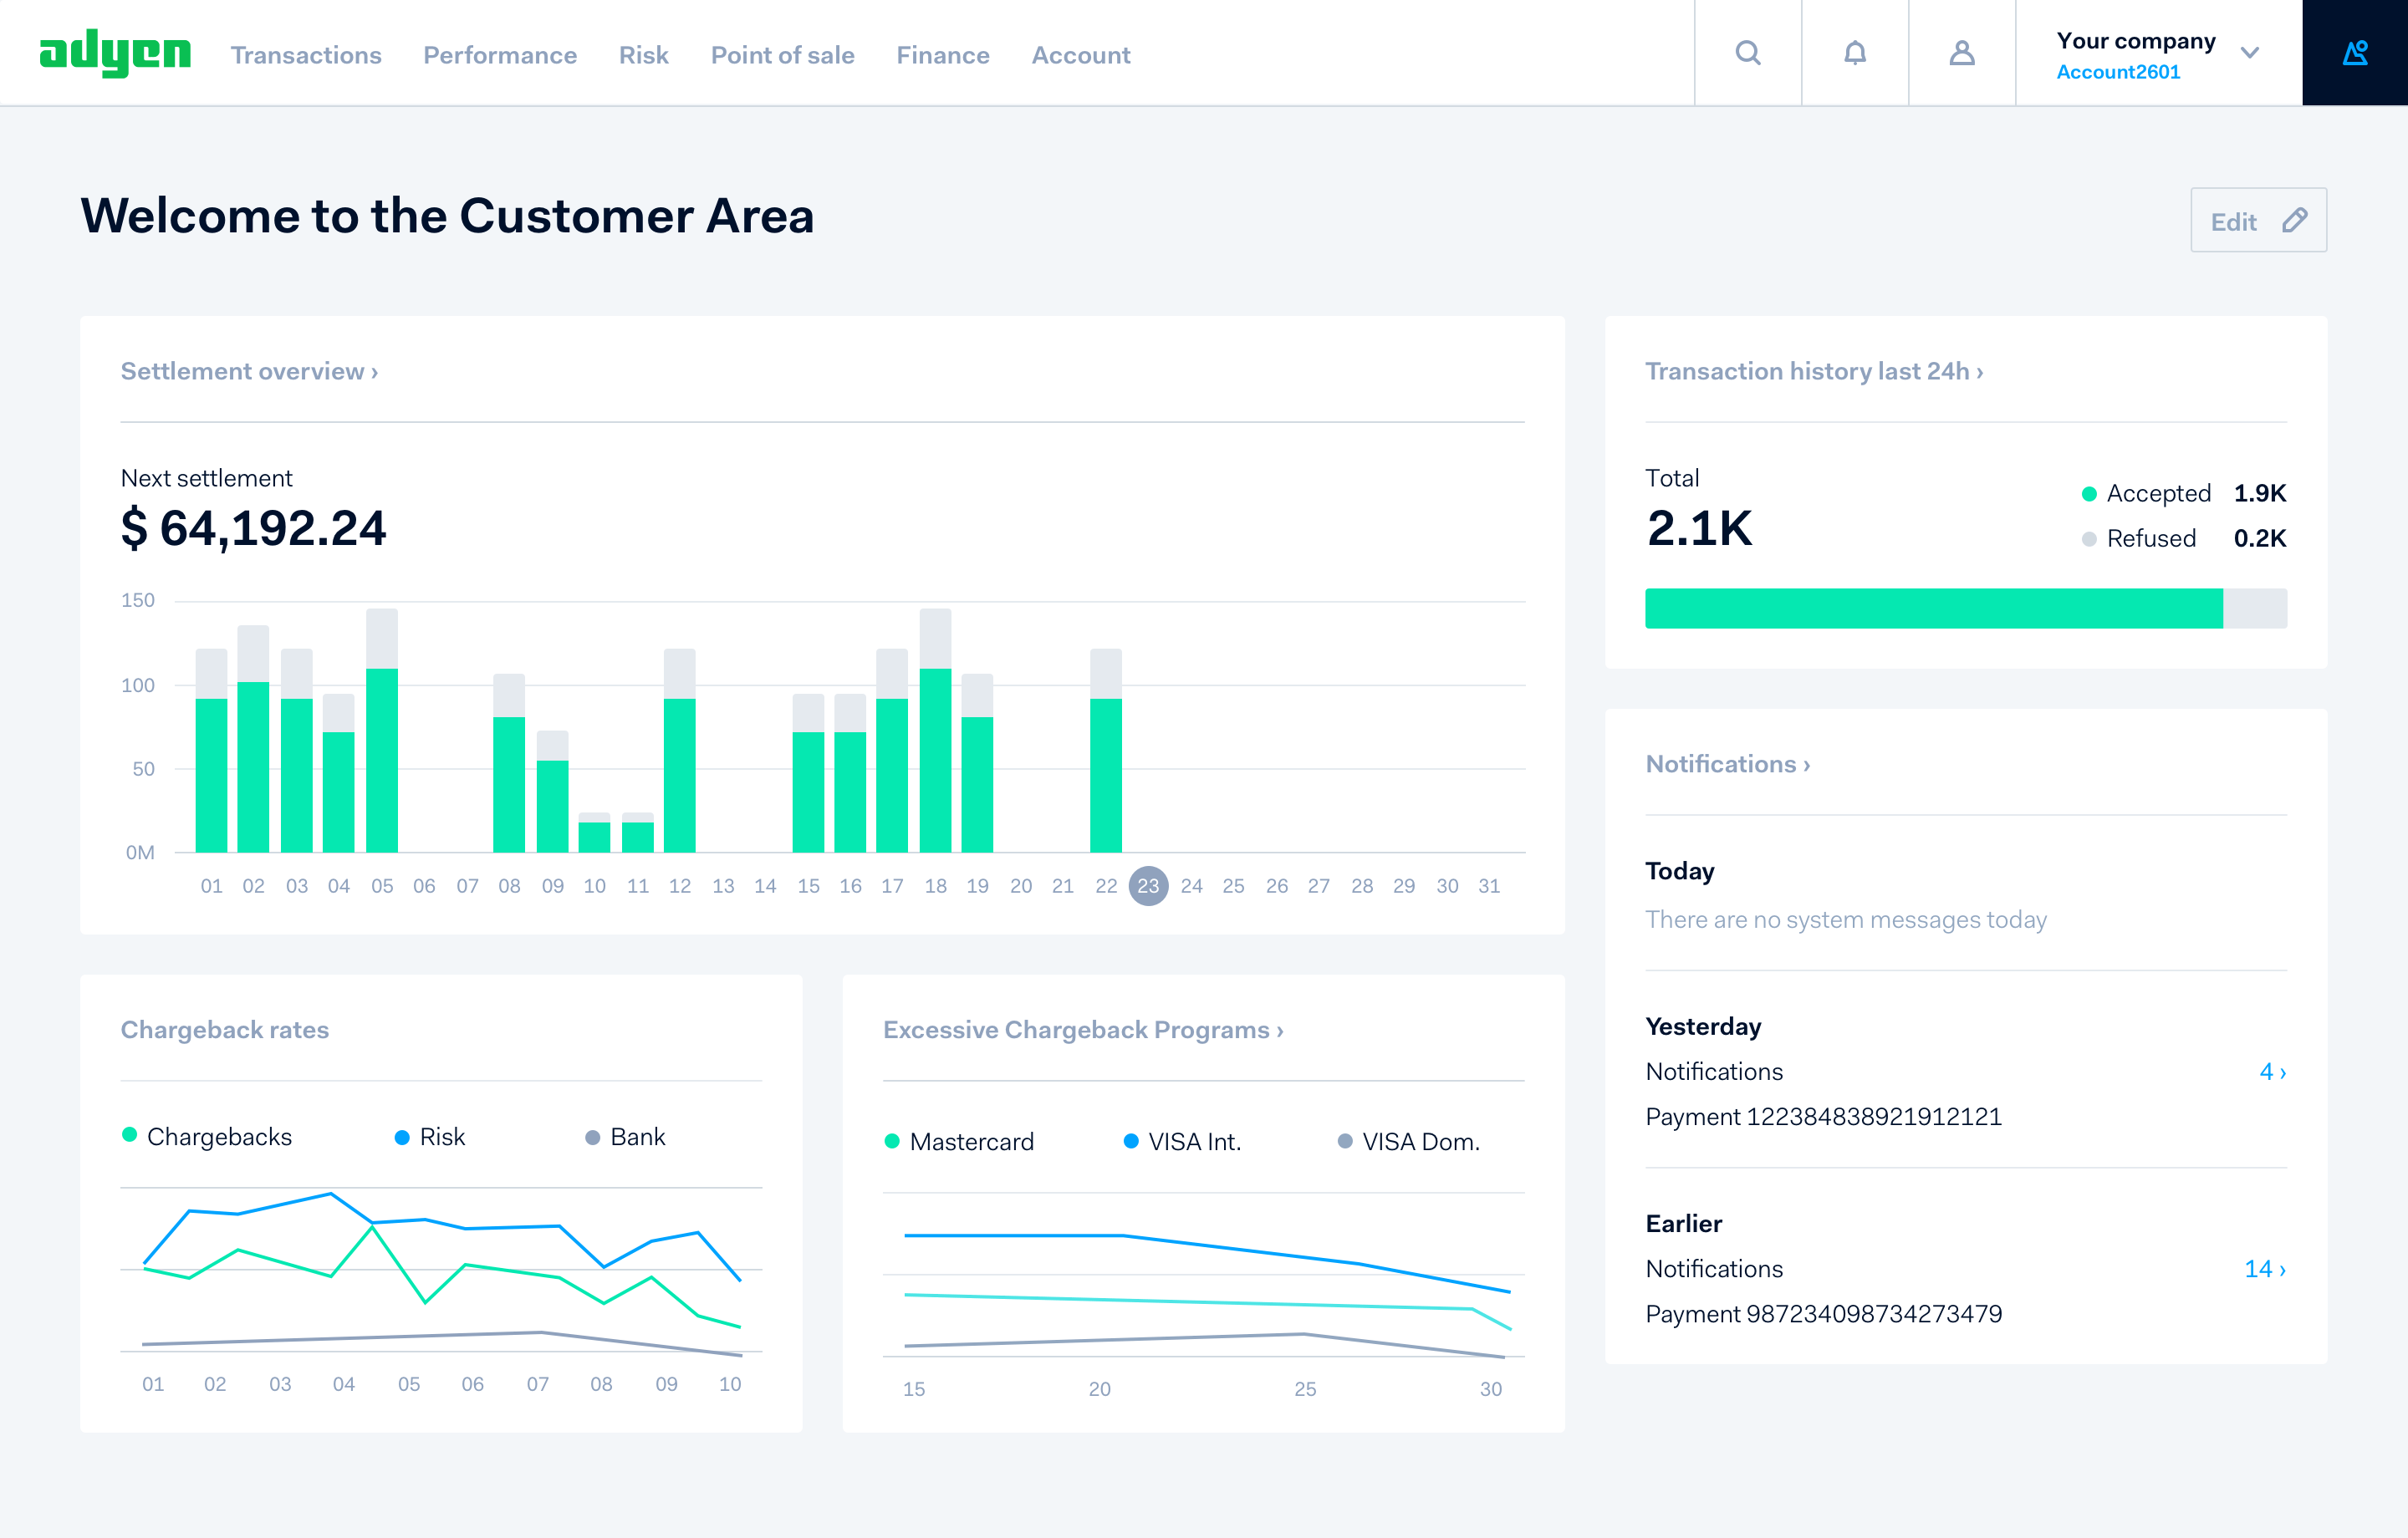 Customer Area | Customer Insights to learn customer behavior - Adyen